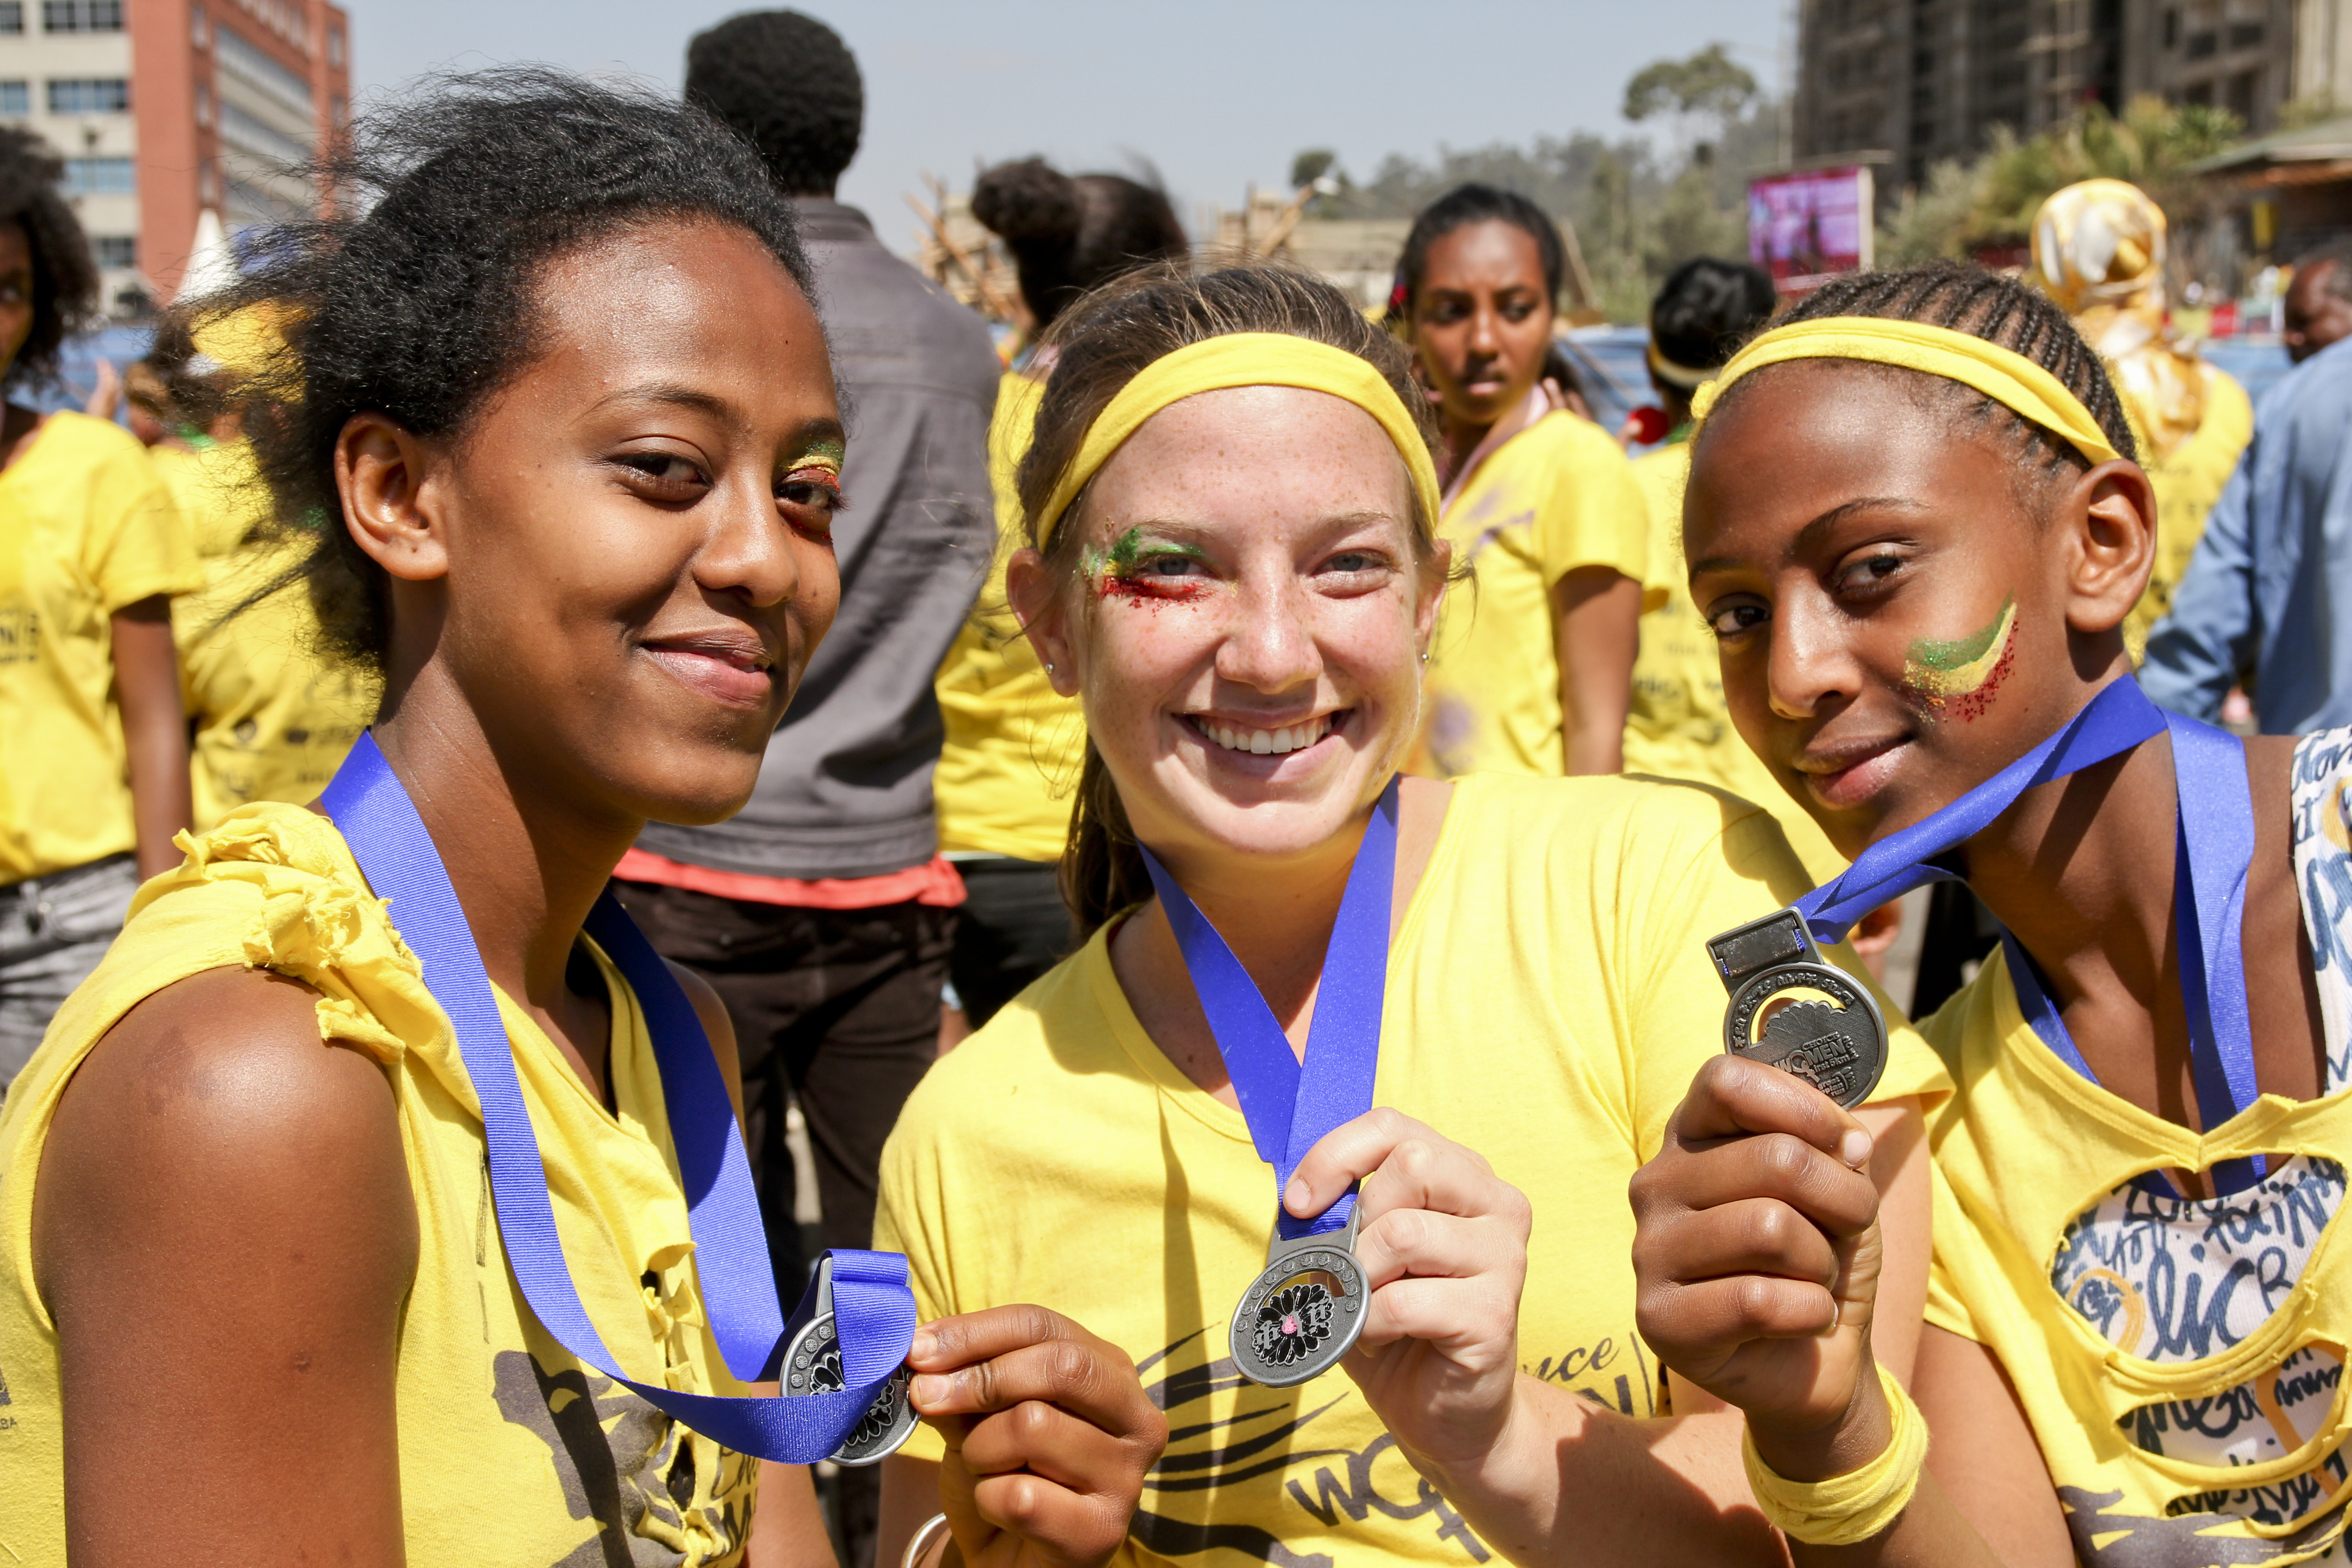 Lauren and two students holding race medals